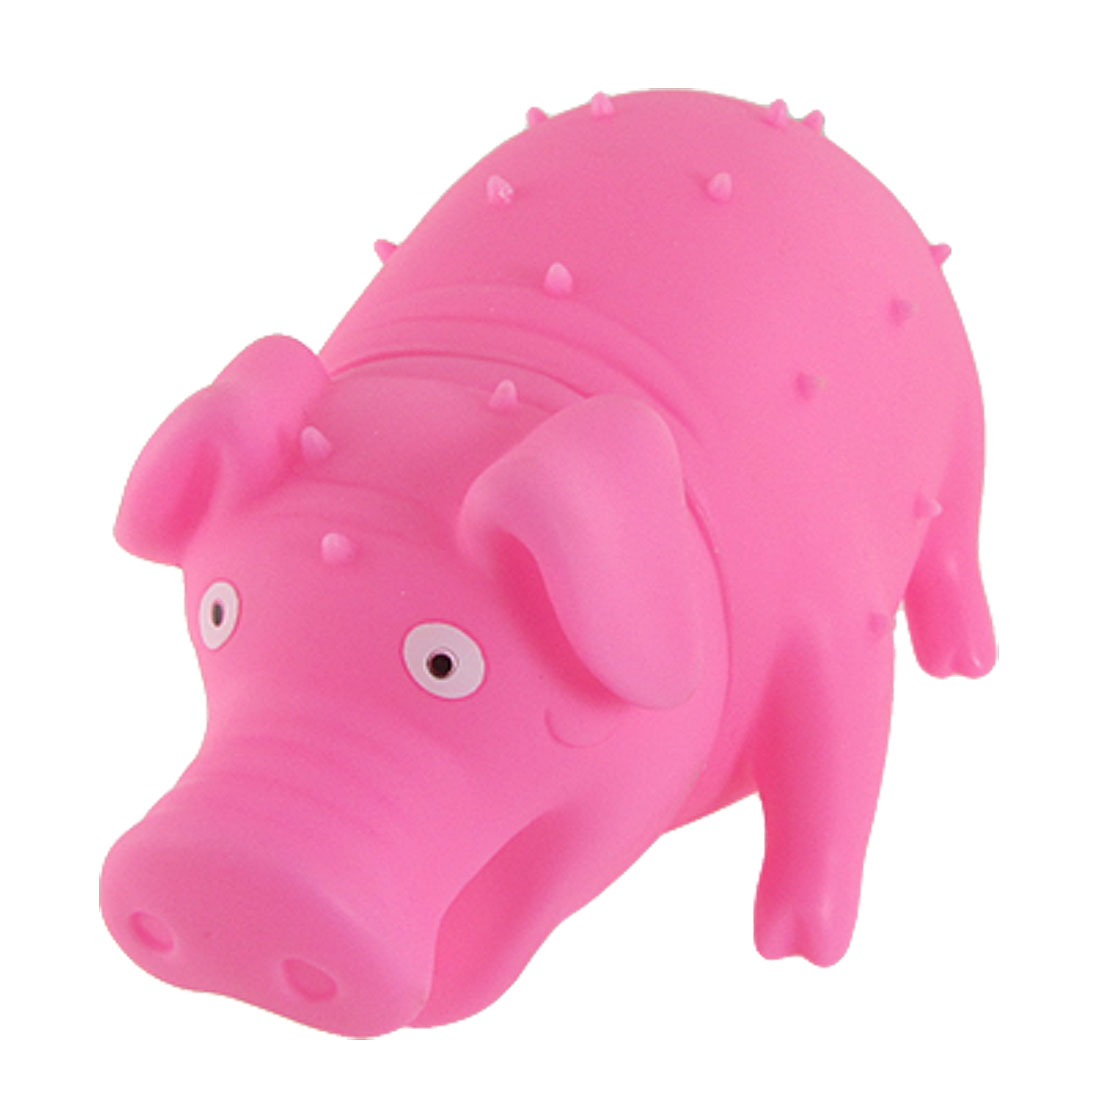 Fuchsia Soft Rubber Bristle Squeeze Grunting Hug Pig Toy